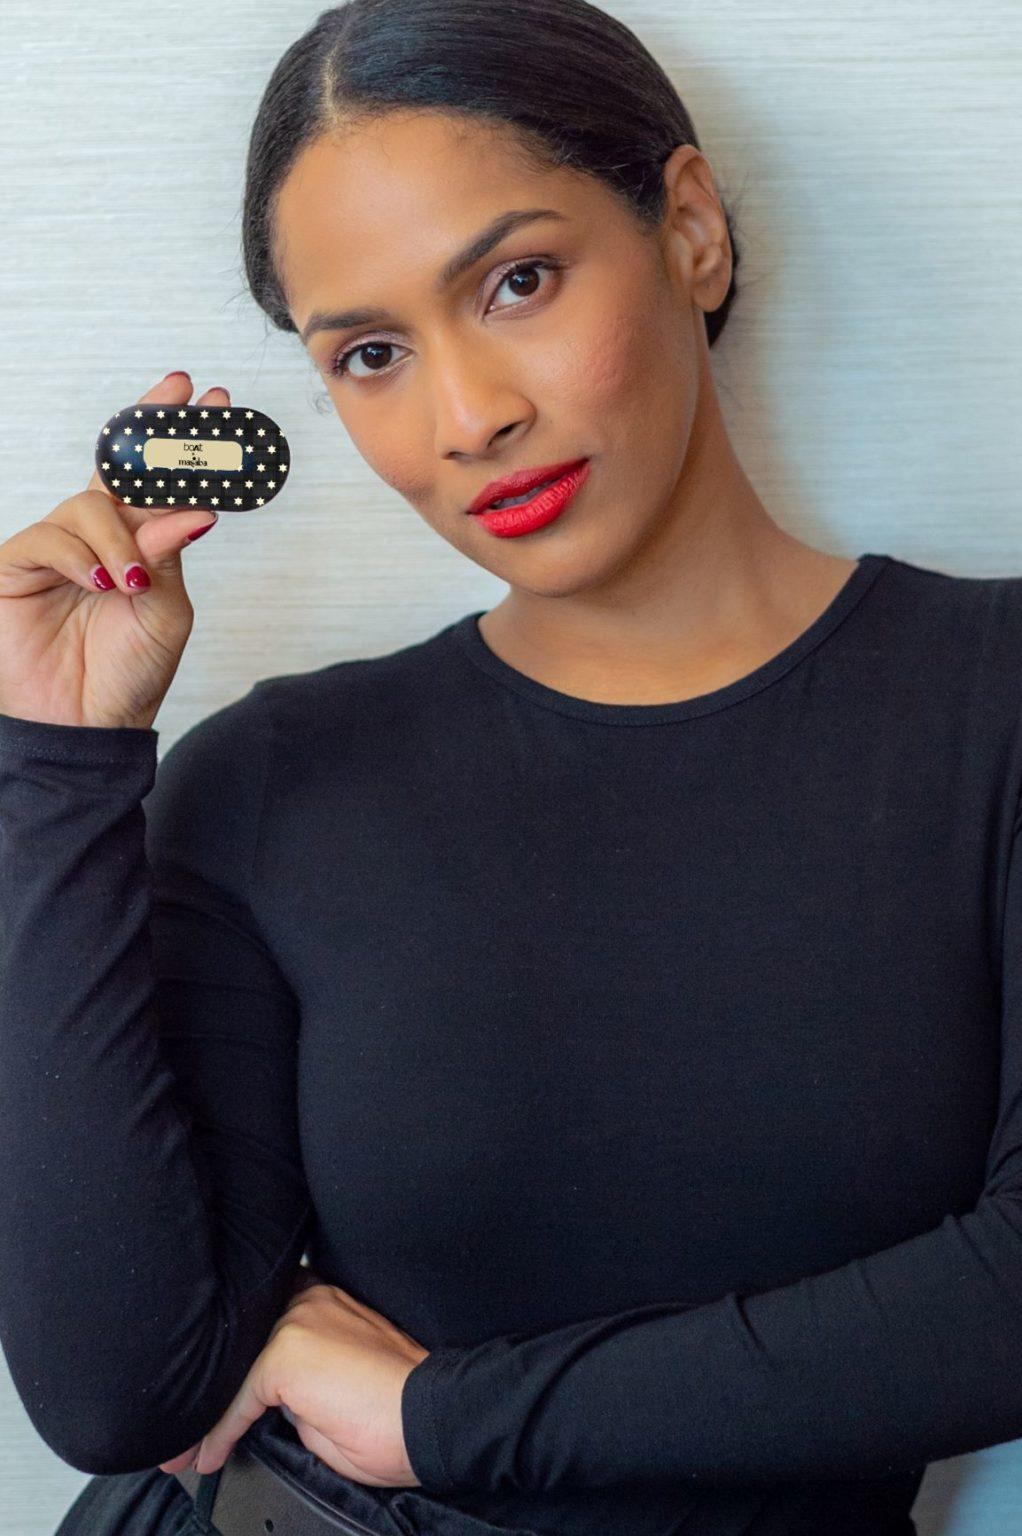 Masaba Gupta; launches a limited edition of headphones designed for the millennial at Lakmé Fashion Week 2020